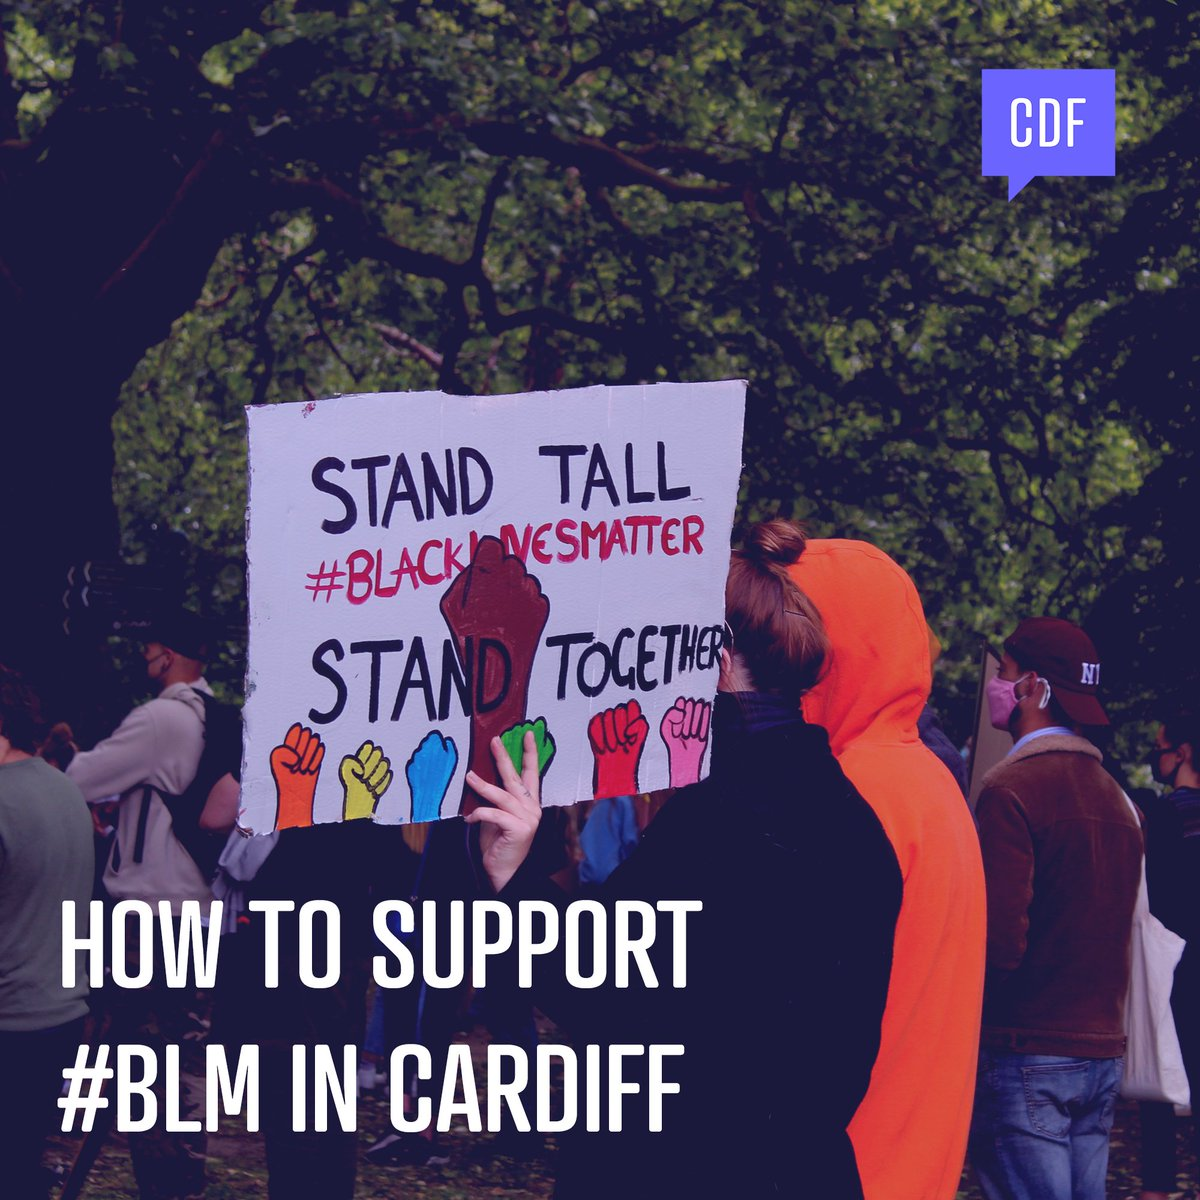 How to support the #BlackLivesMatter movement in Cardiff: a thread. [1/?]